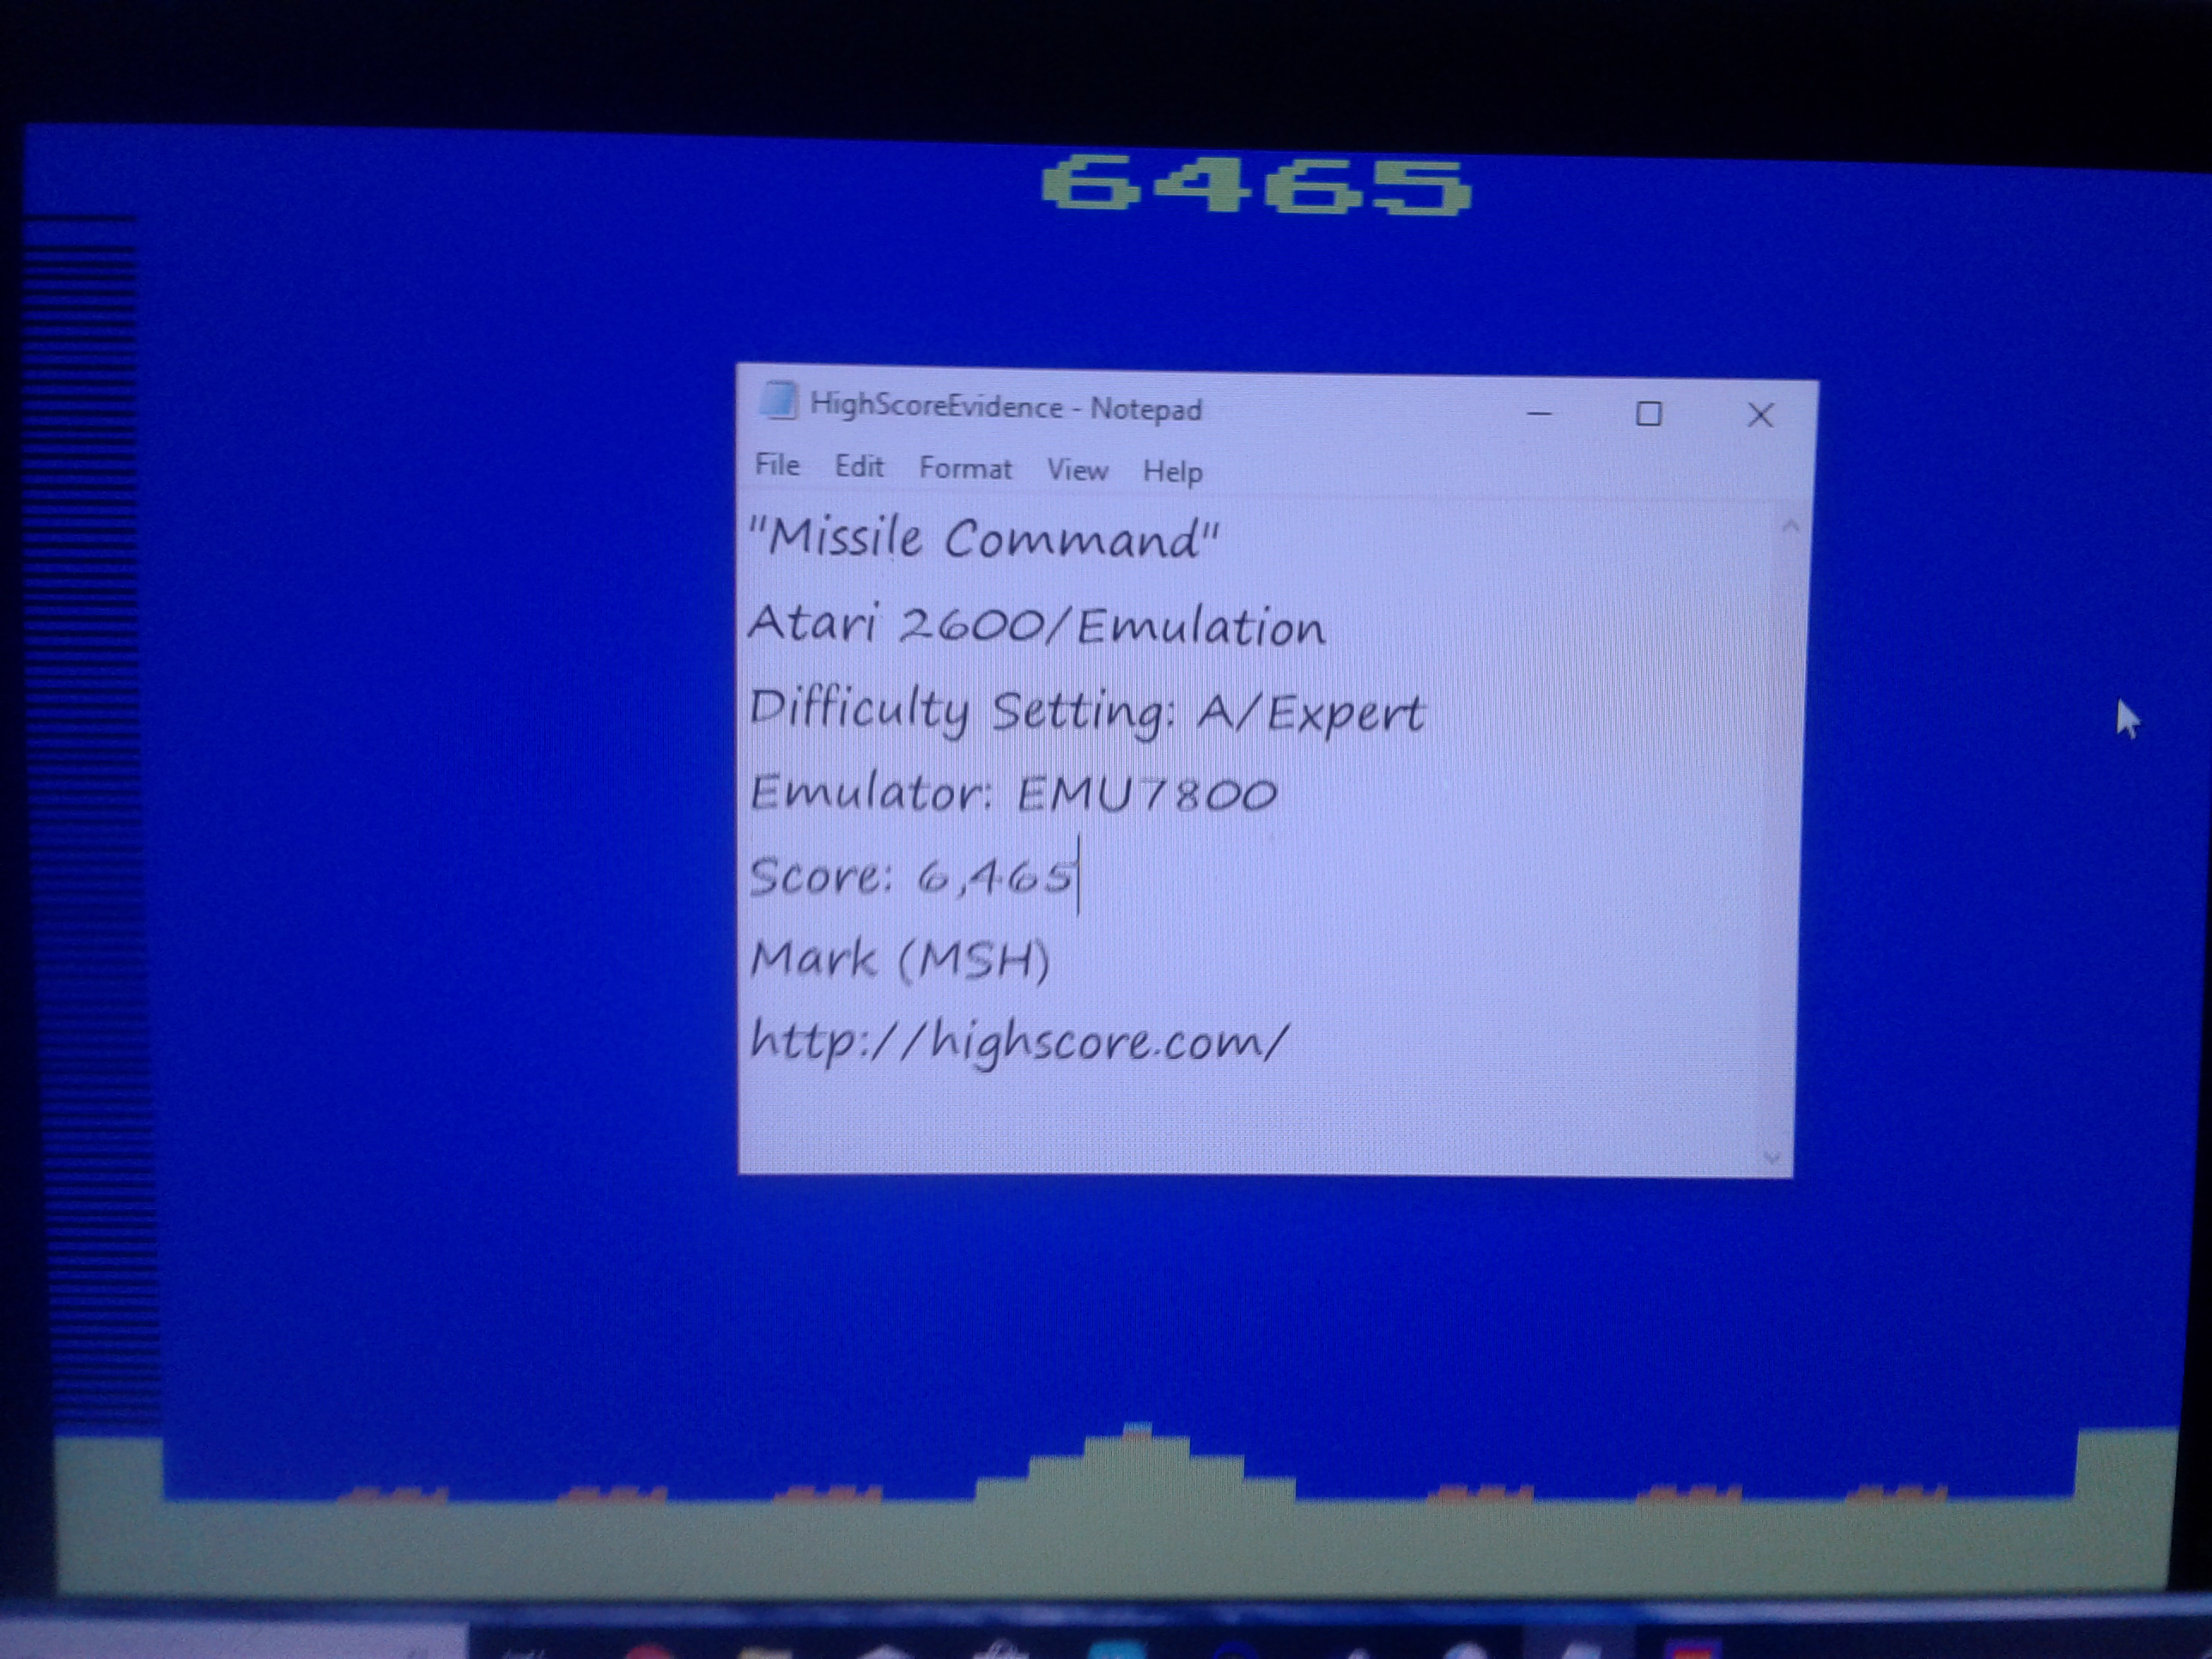 Mark: Missile Command (Atari 2600 Emulated Expert/A Mode) 6,465 points on 2019-01-11 03:23:02